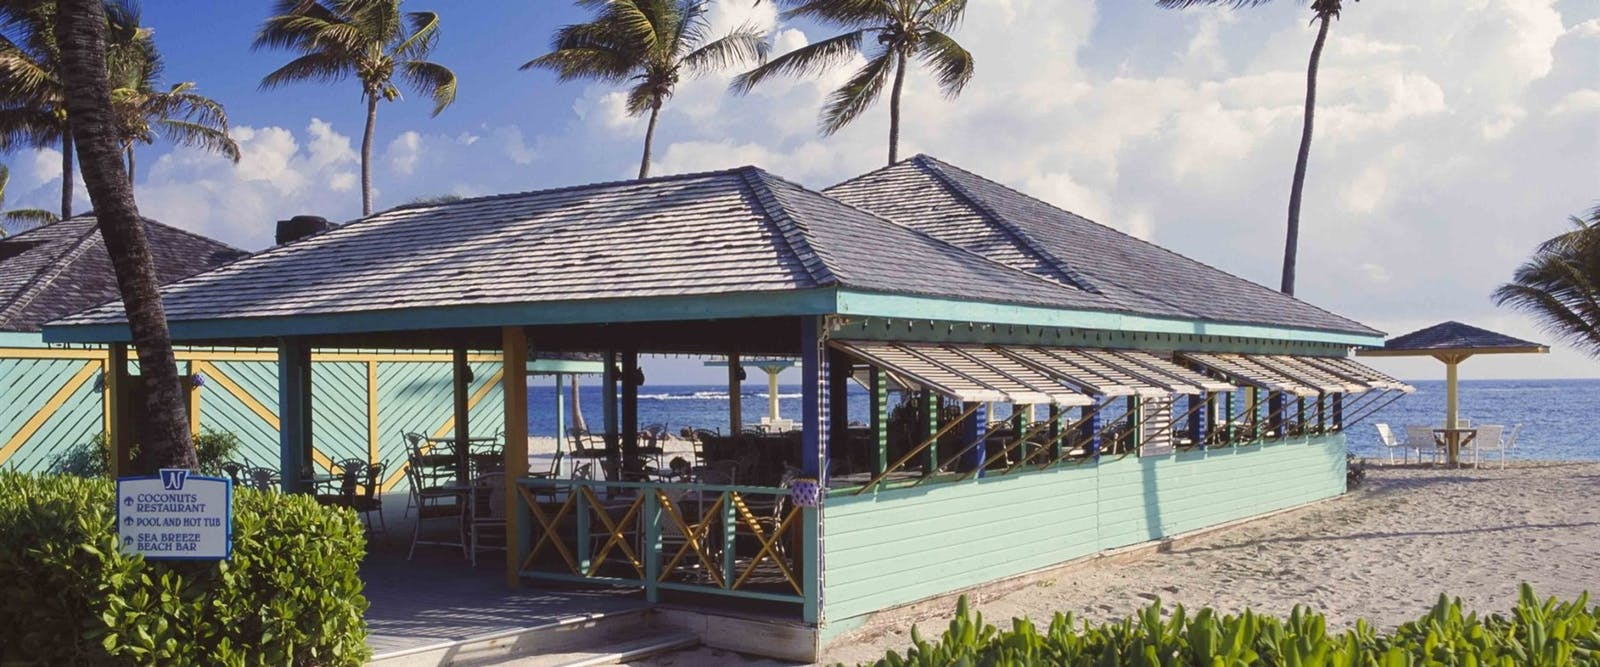 Ocean-side Sea Breeze Beach Bar at Nisbet Plantation Beach Club, Nevis